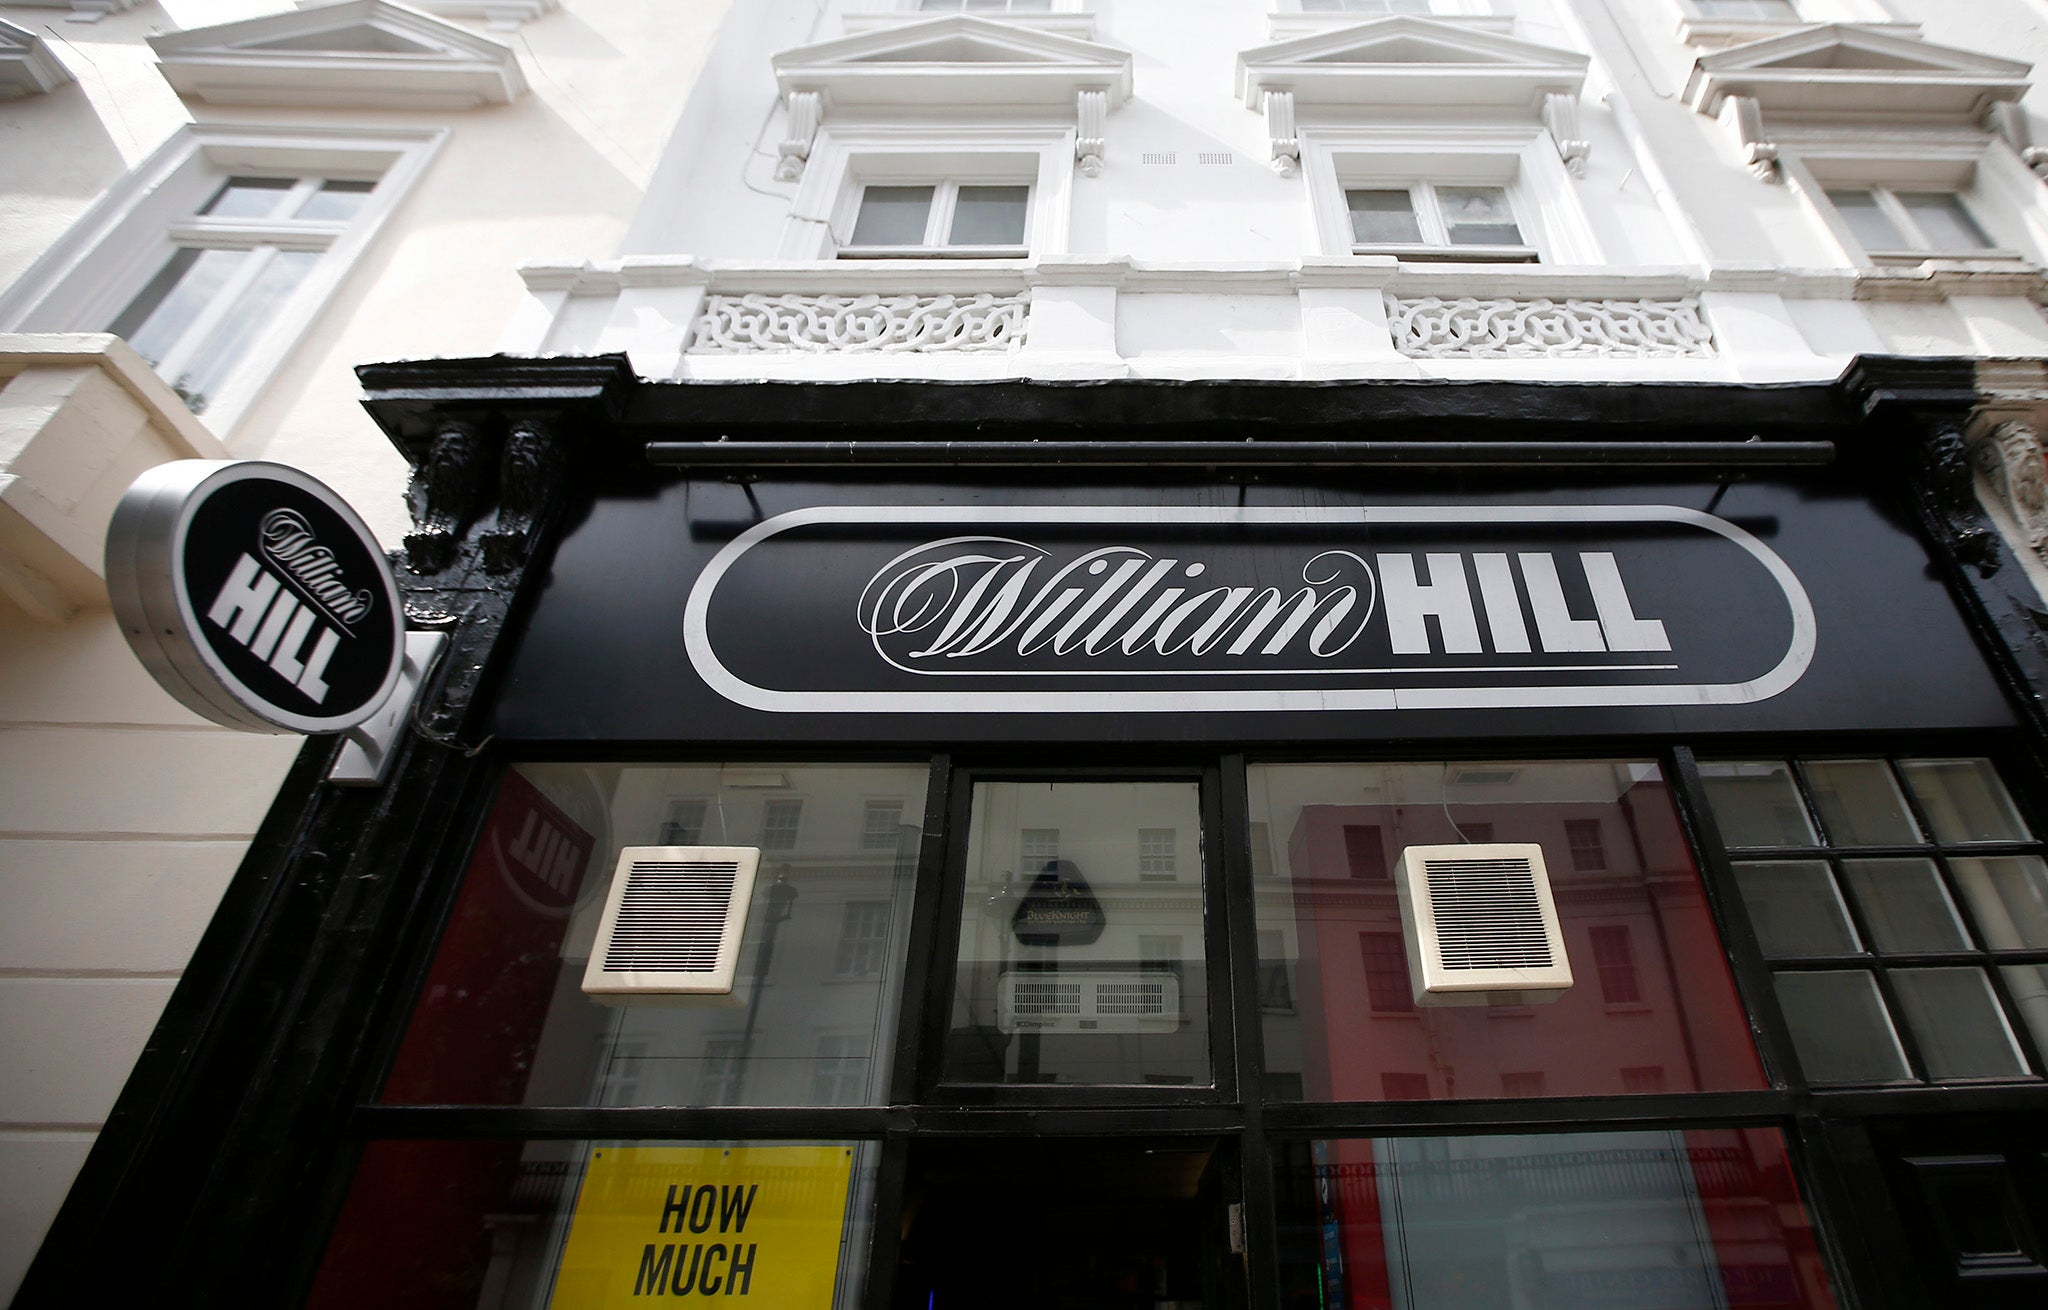 William hill refinancing american culture gambling